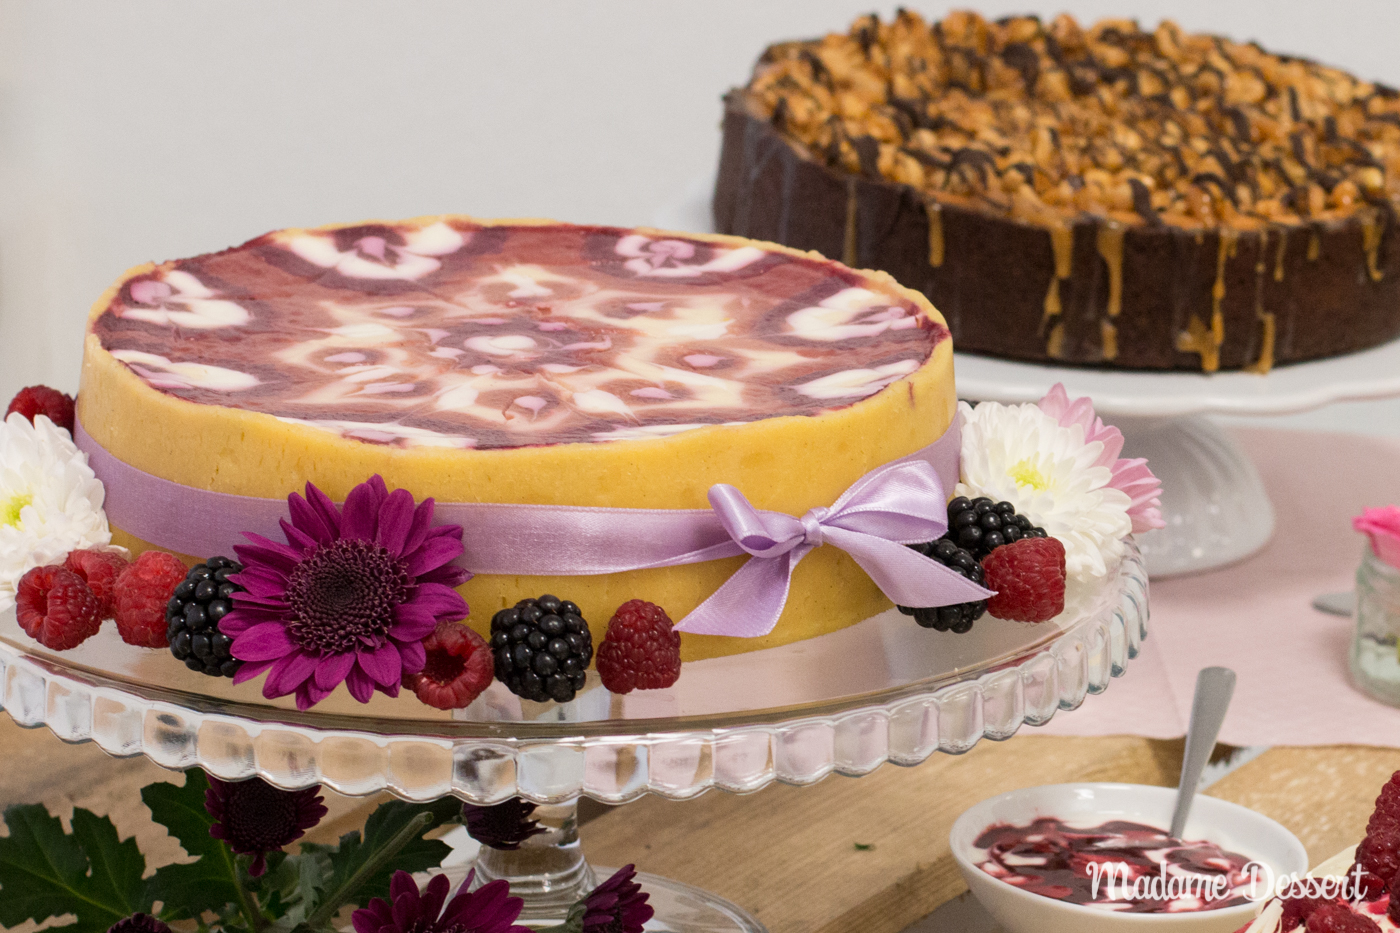 CheeseCakeOff – Käsekuchen & Cheesecake Variationen | Berry Manilow | Madame Dessert